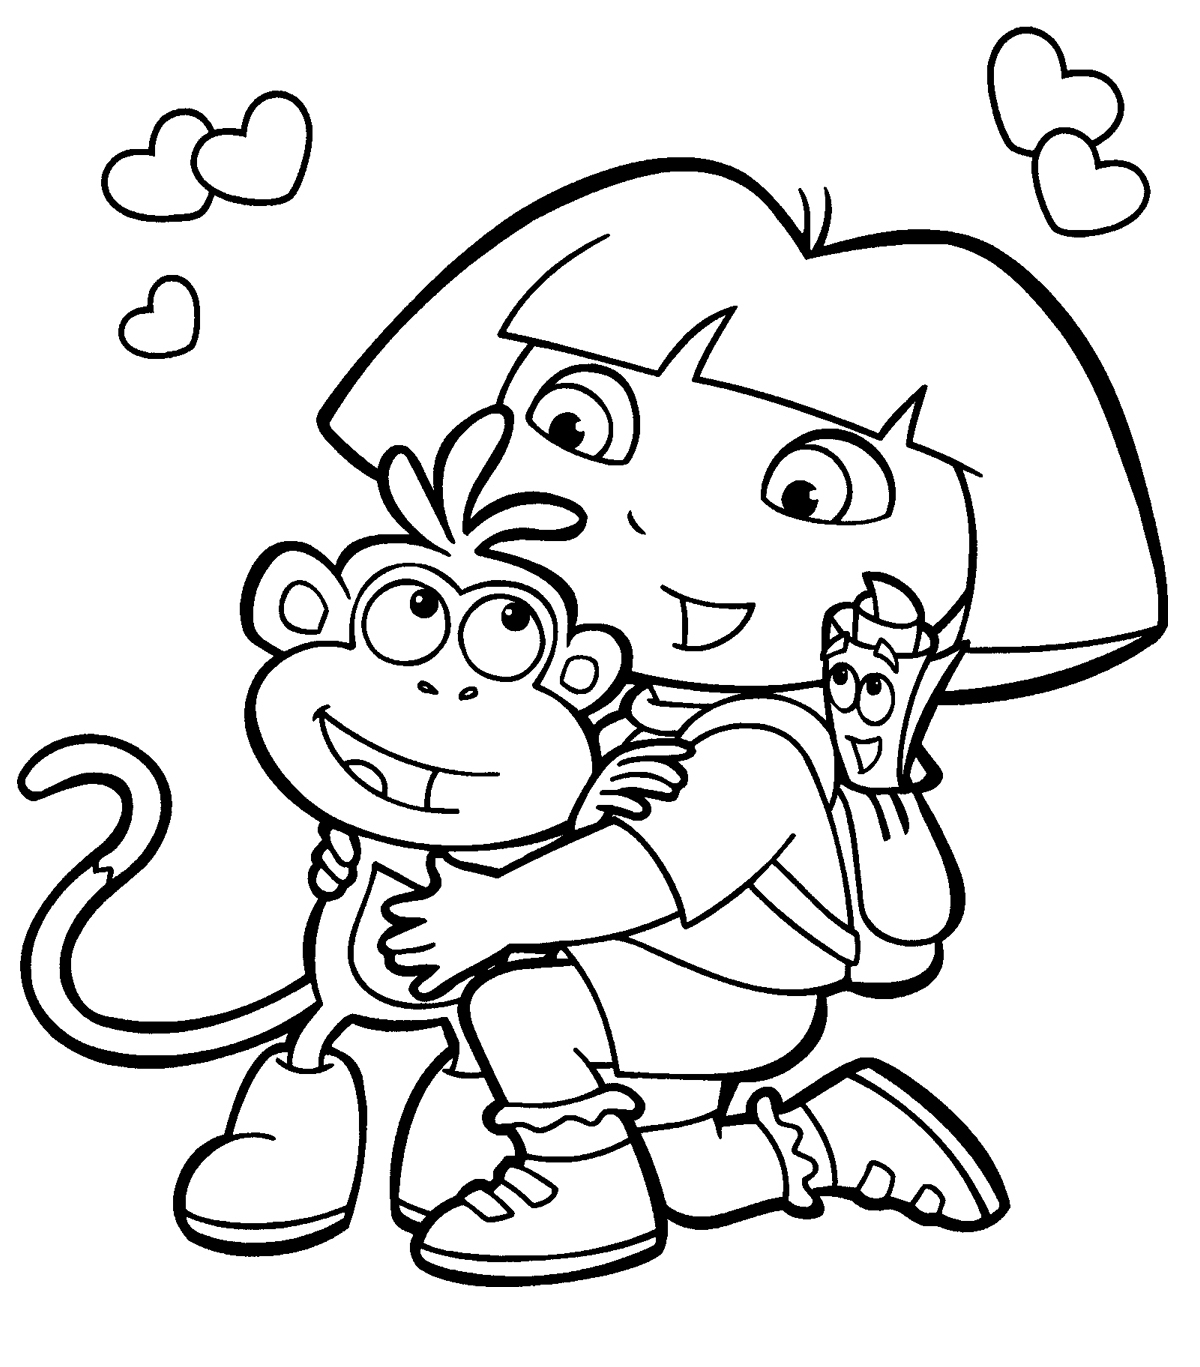 Dora the Explorer Coloring Pages - Free Printable Dora the Explorer Coloring Pages for Kids